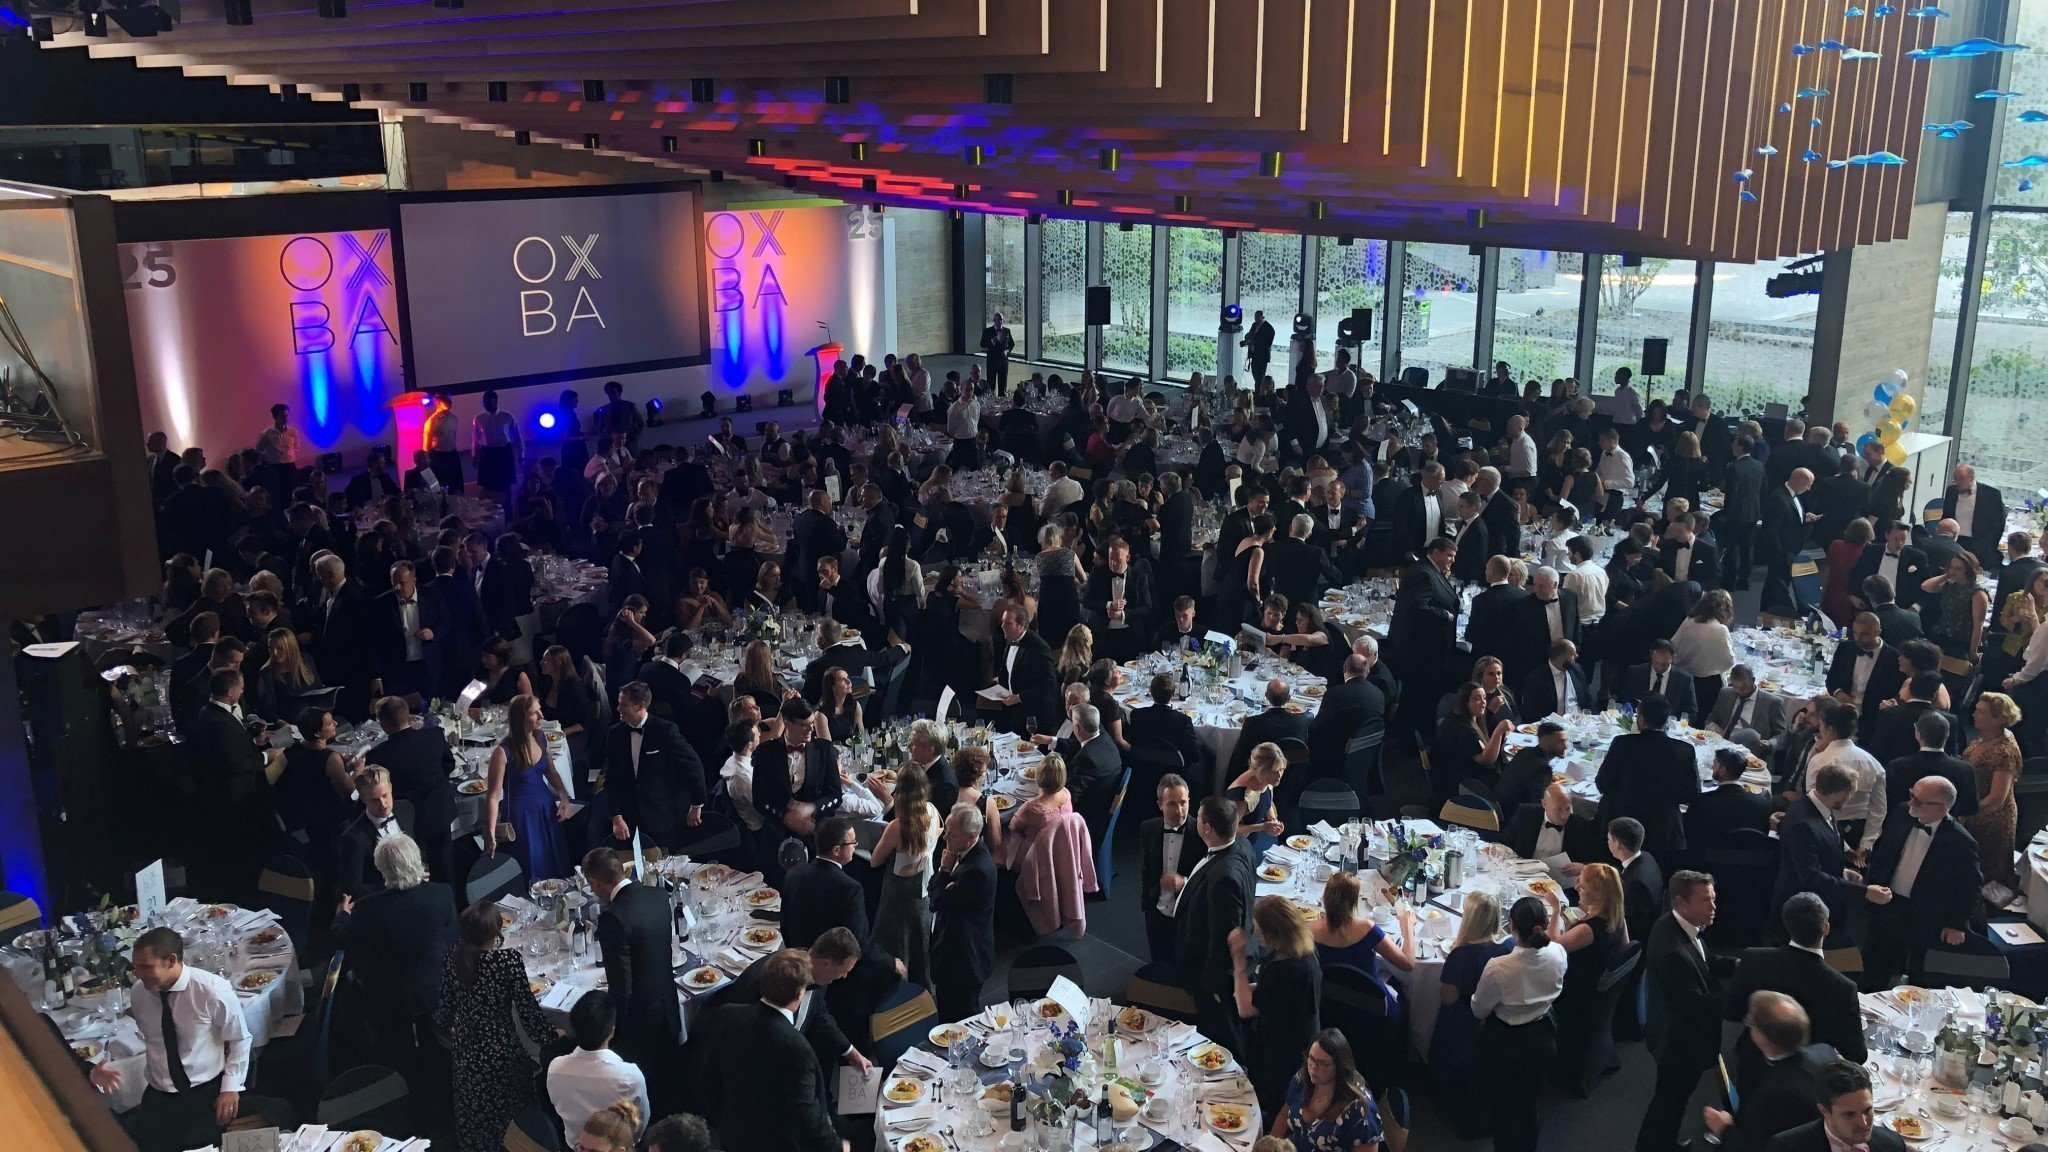 Oxfordshire Business Awards 2020 launches today. Image: The 25th Oxfordshire Business Awards Dinner at the John Henry Brookes Building at Oxford Brookes University on Friday 14 June 2019.